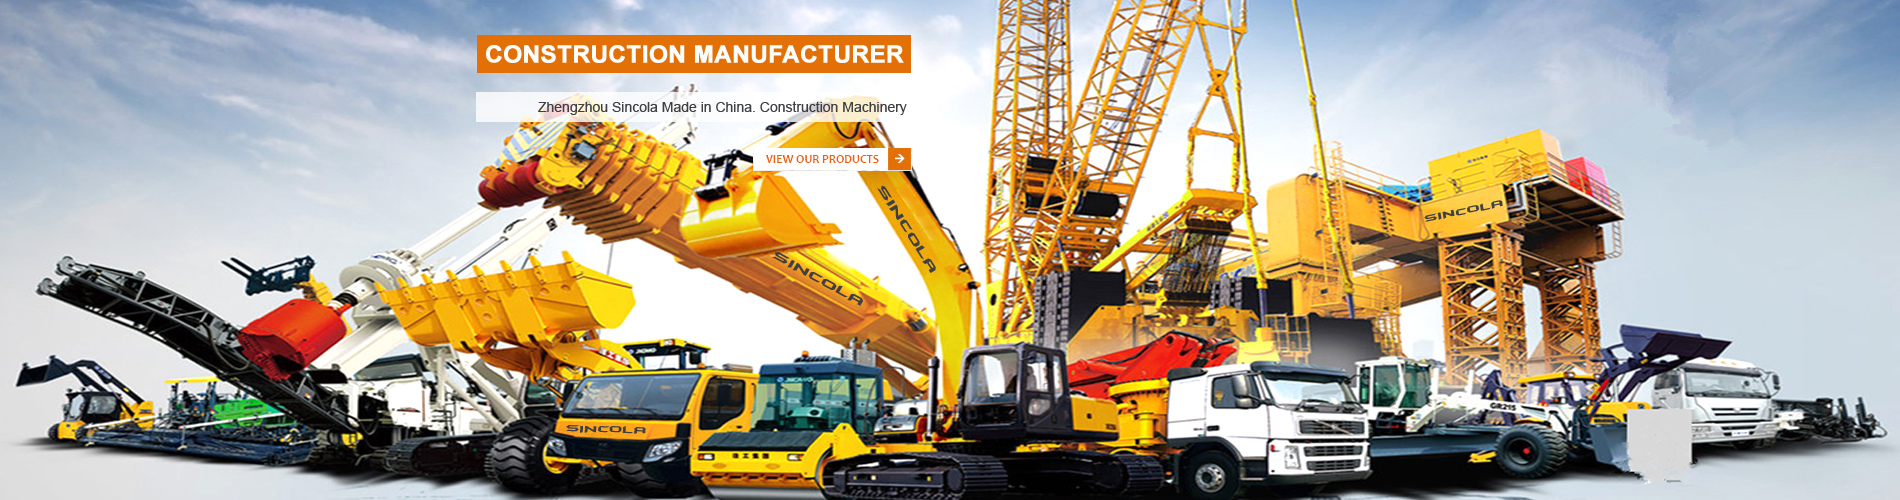 Zhengzhou Sincola Machinery Co.,Ltd. Main Image